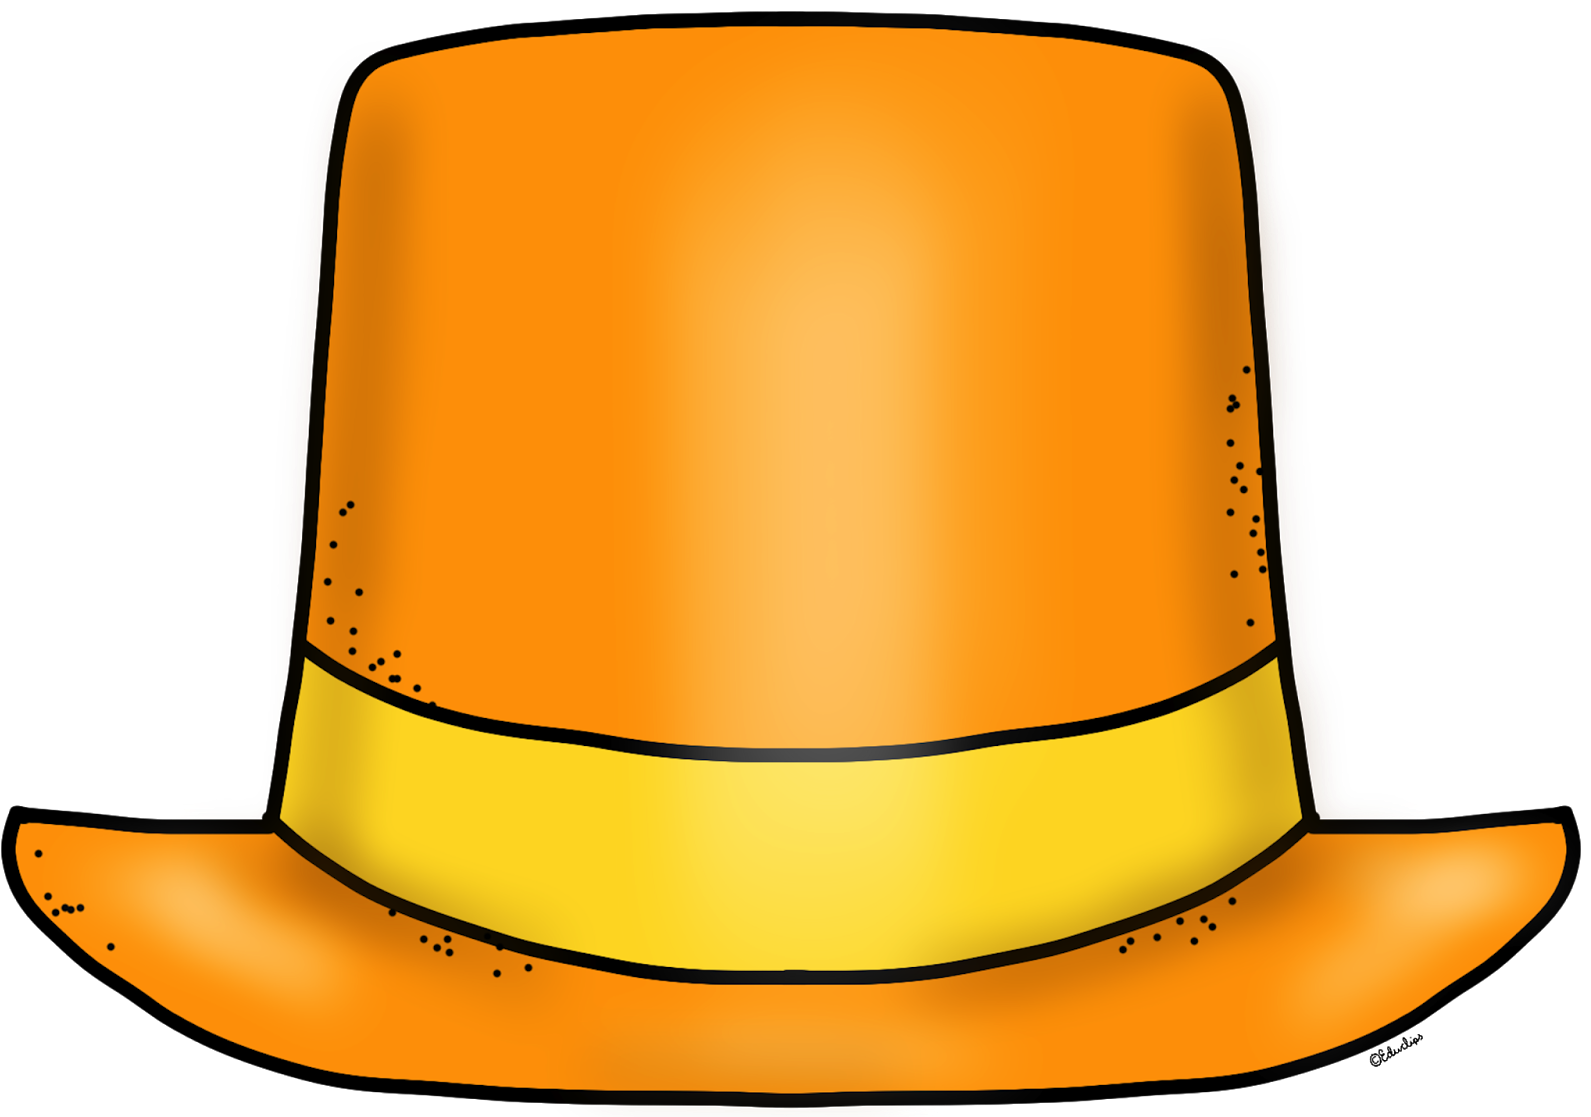 Clip Arts Related To - Orange Top Hat Clipart - Png ...